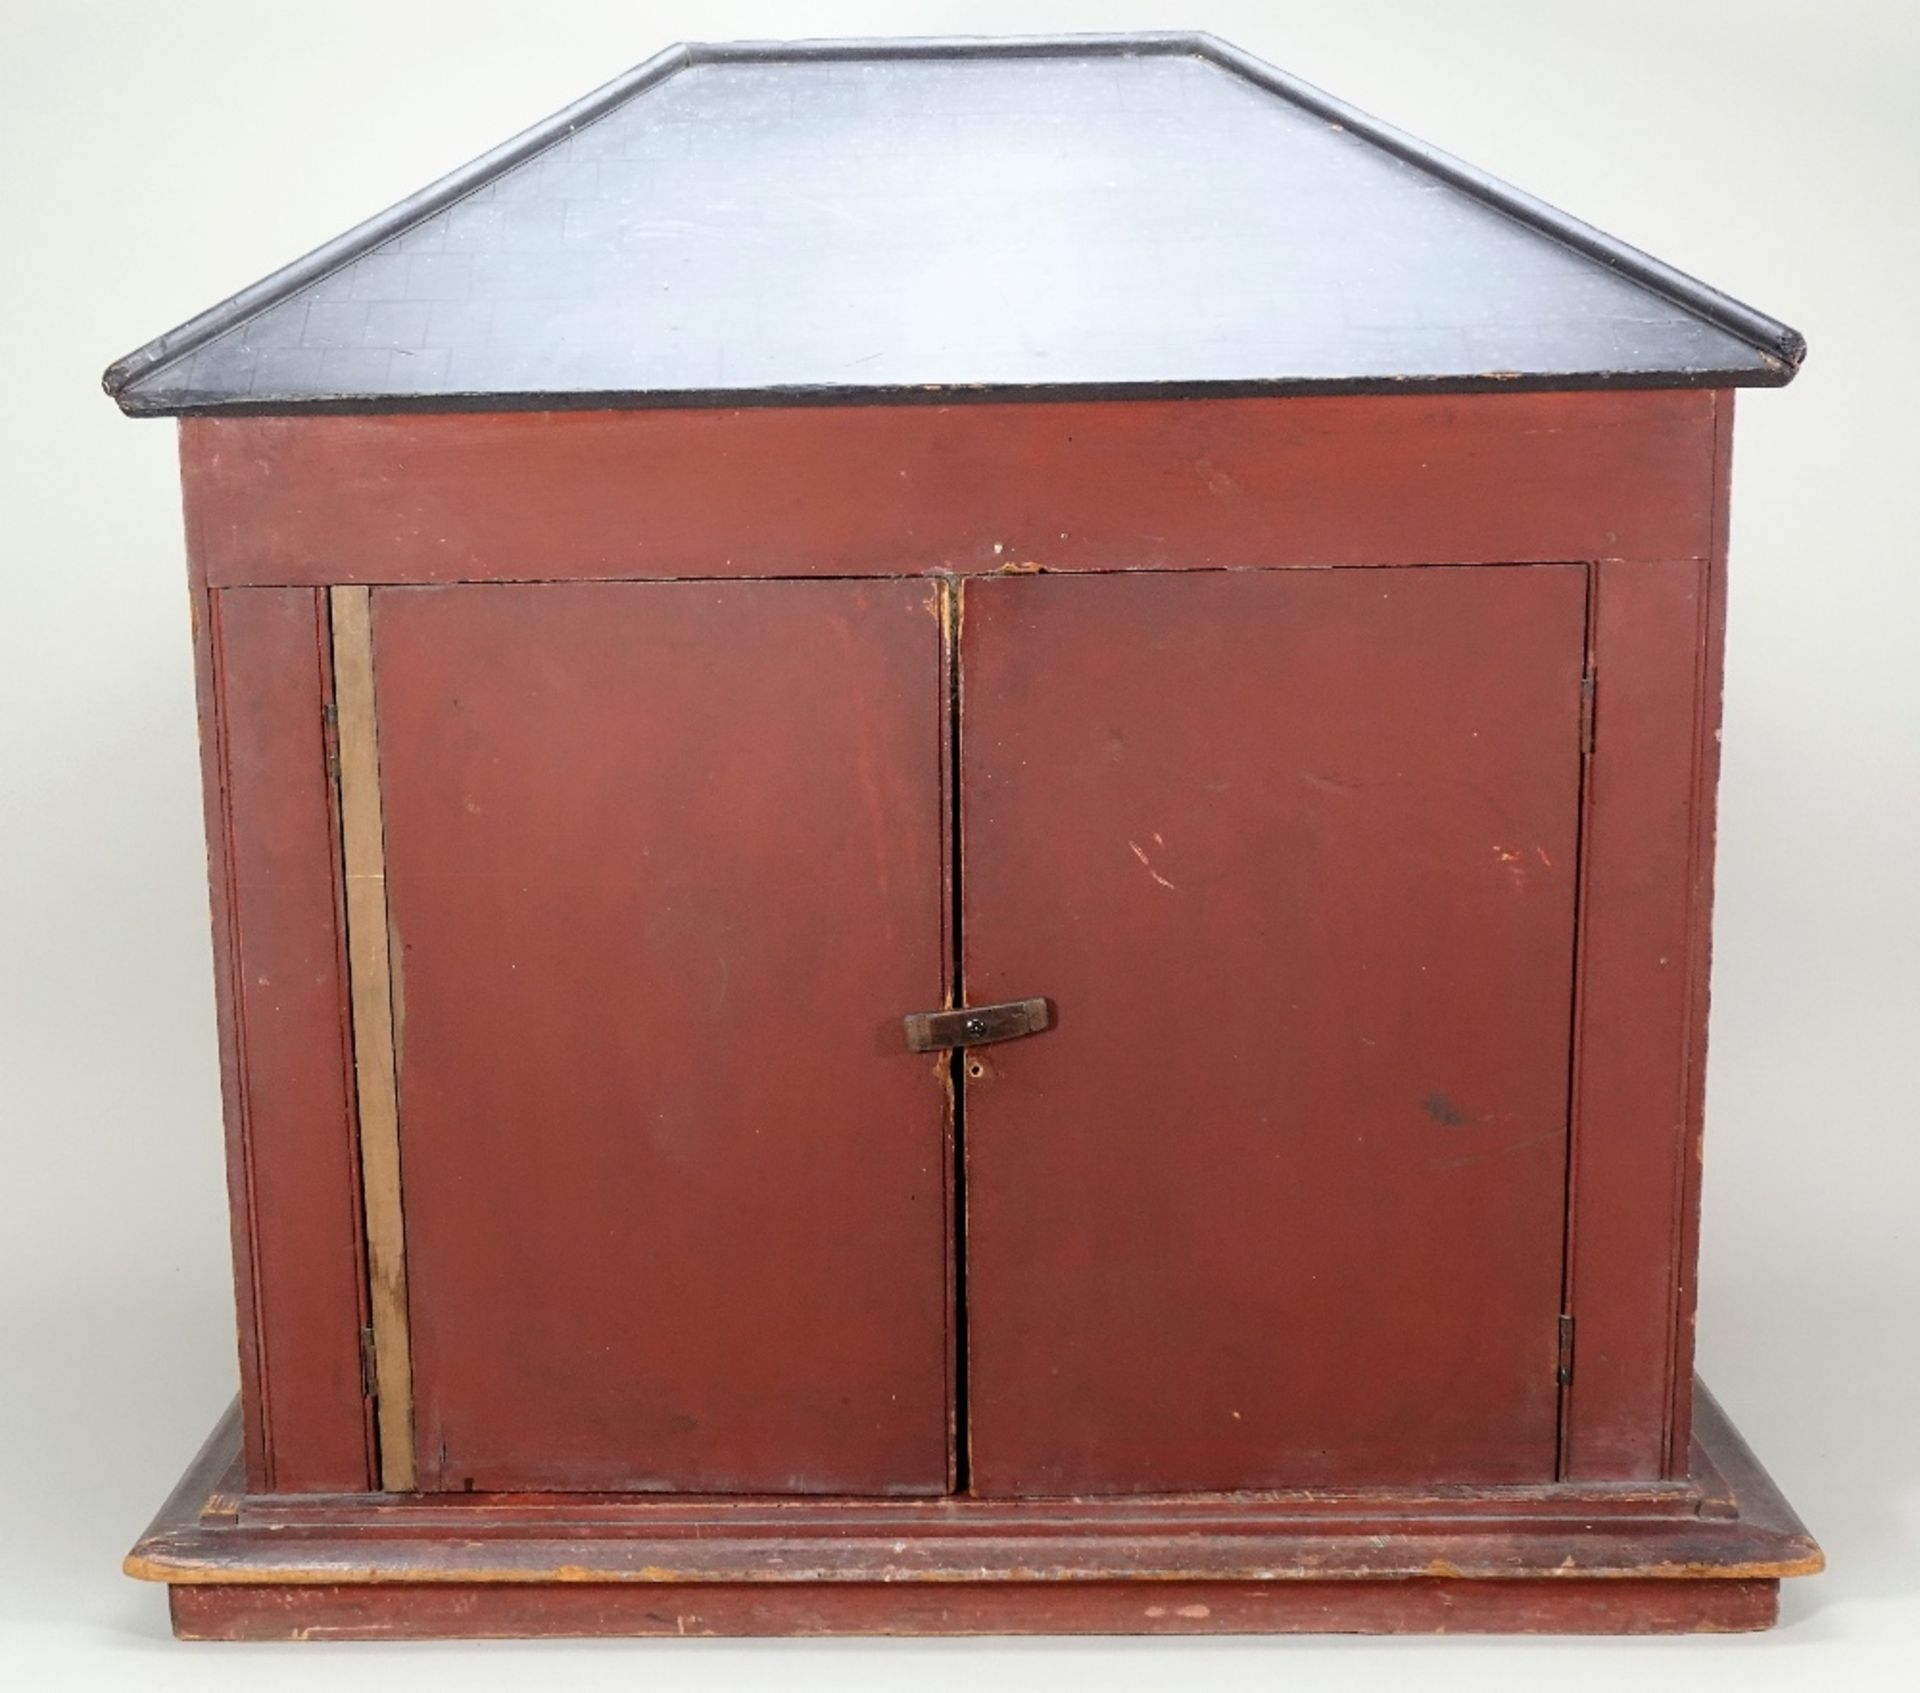 'Wesley Villa' a fine painted wooden red brick Victorian dolls house, English circa 1860, - Image 4 of 4